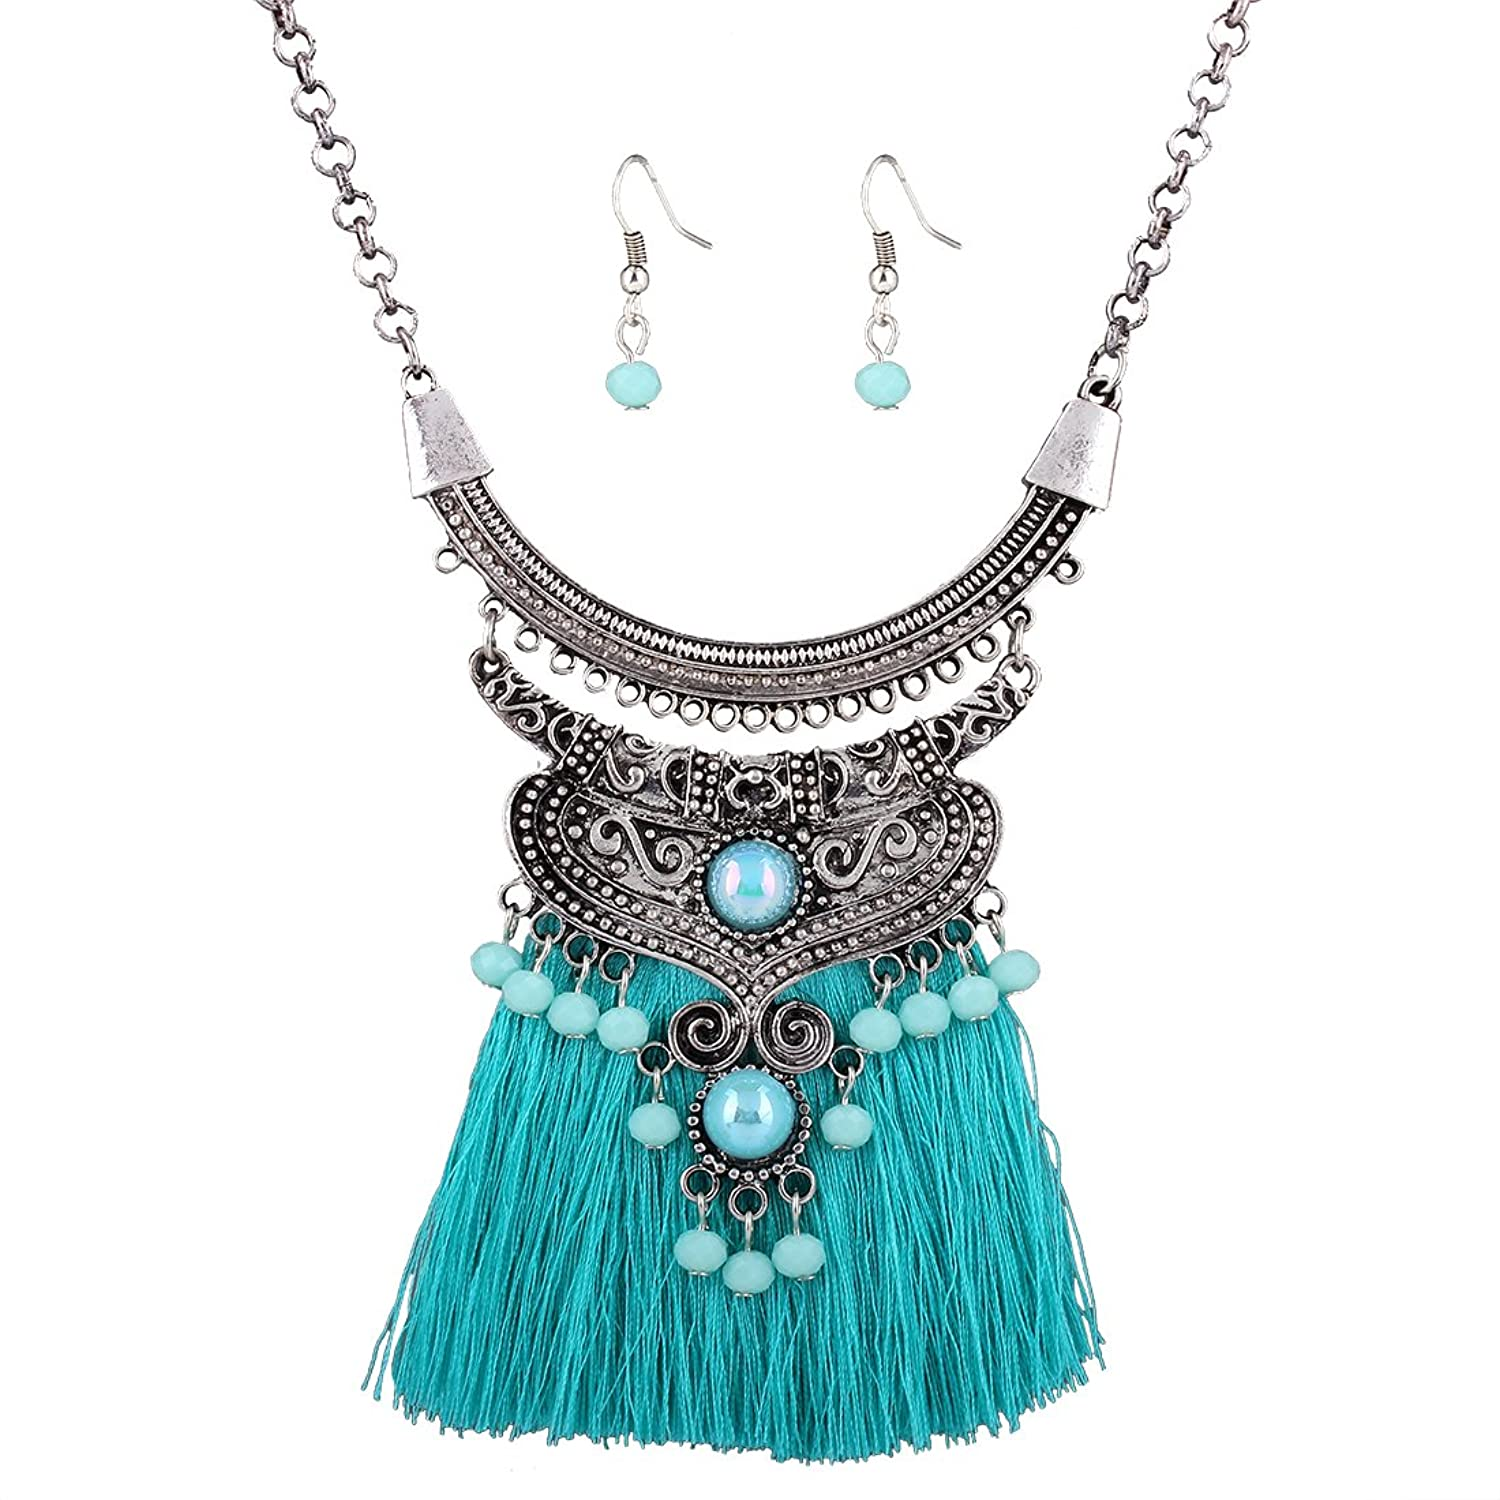 Gprince Retro Style Bohemia Style Tassels Weave Accessories Earring Necklace Fashion Jewelry Set Royal